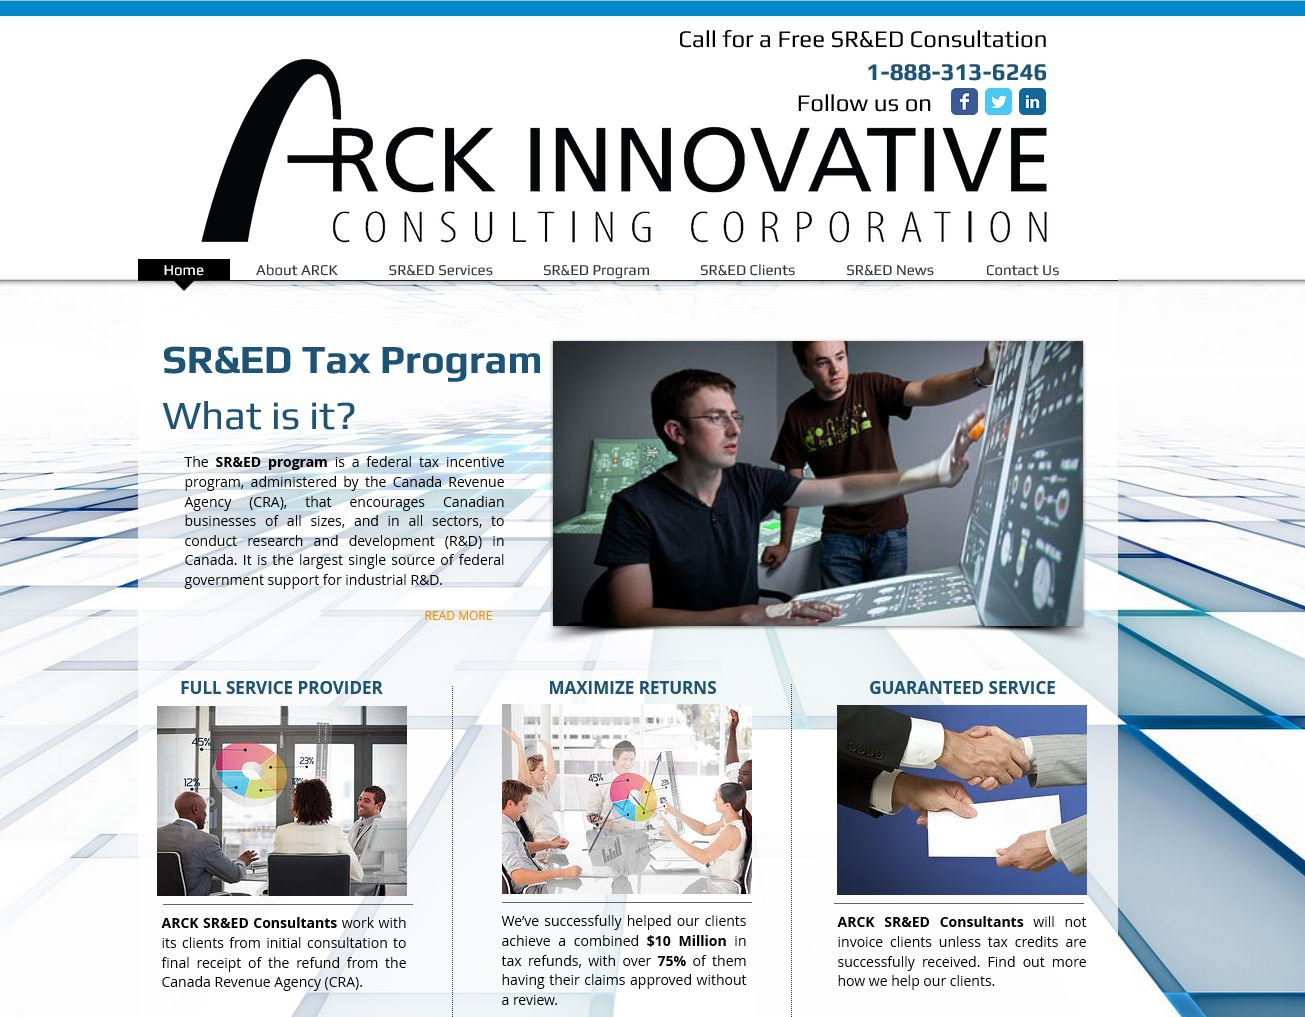 ARCK Innovative Consulting Corp.